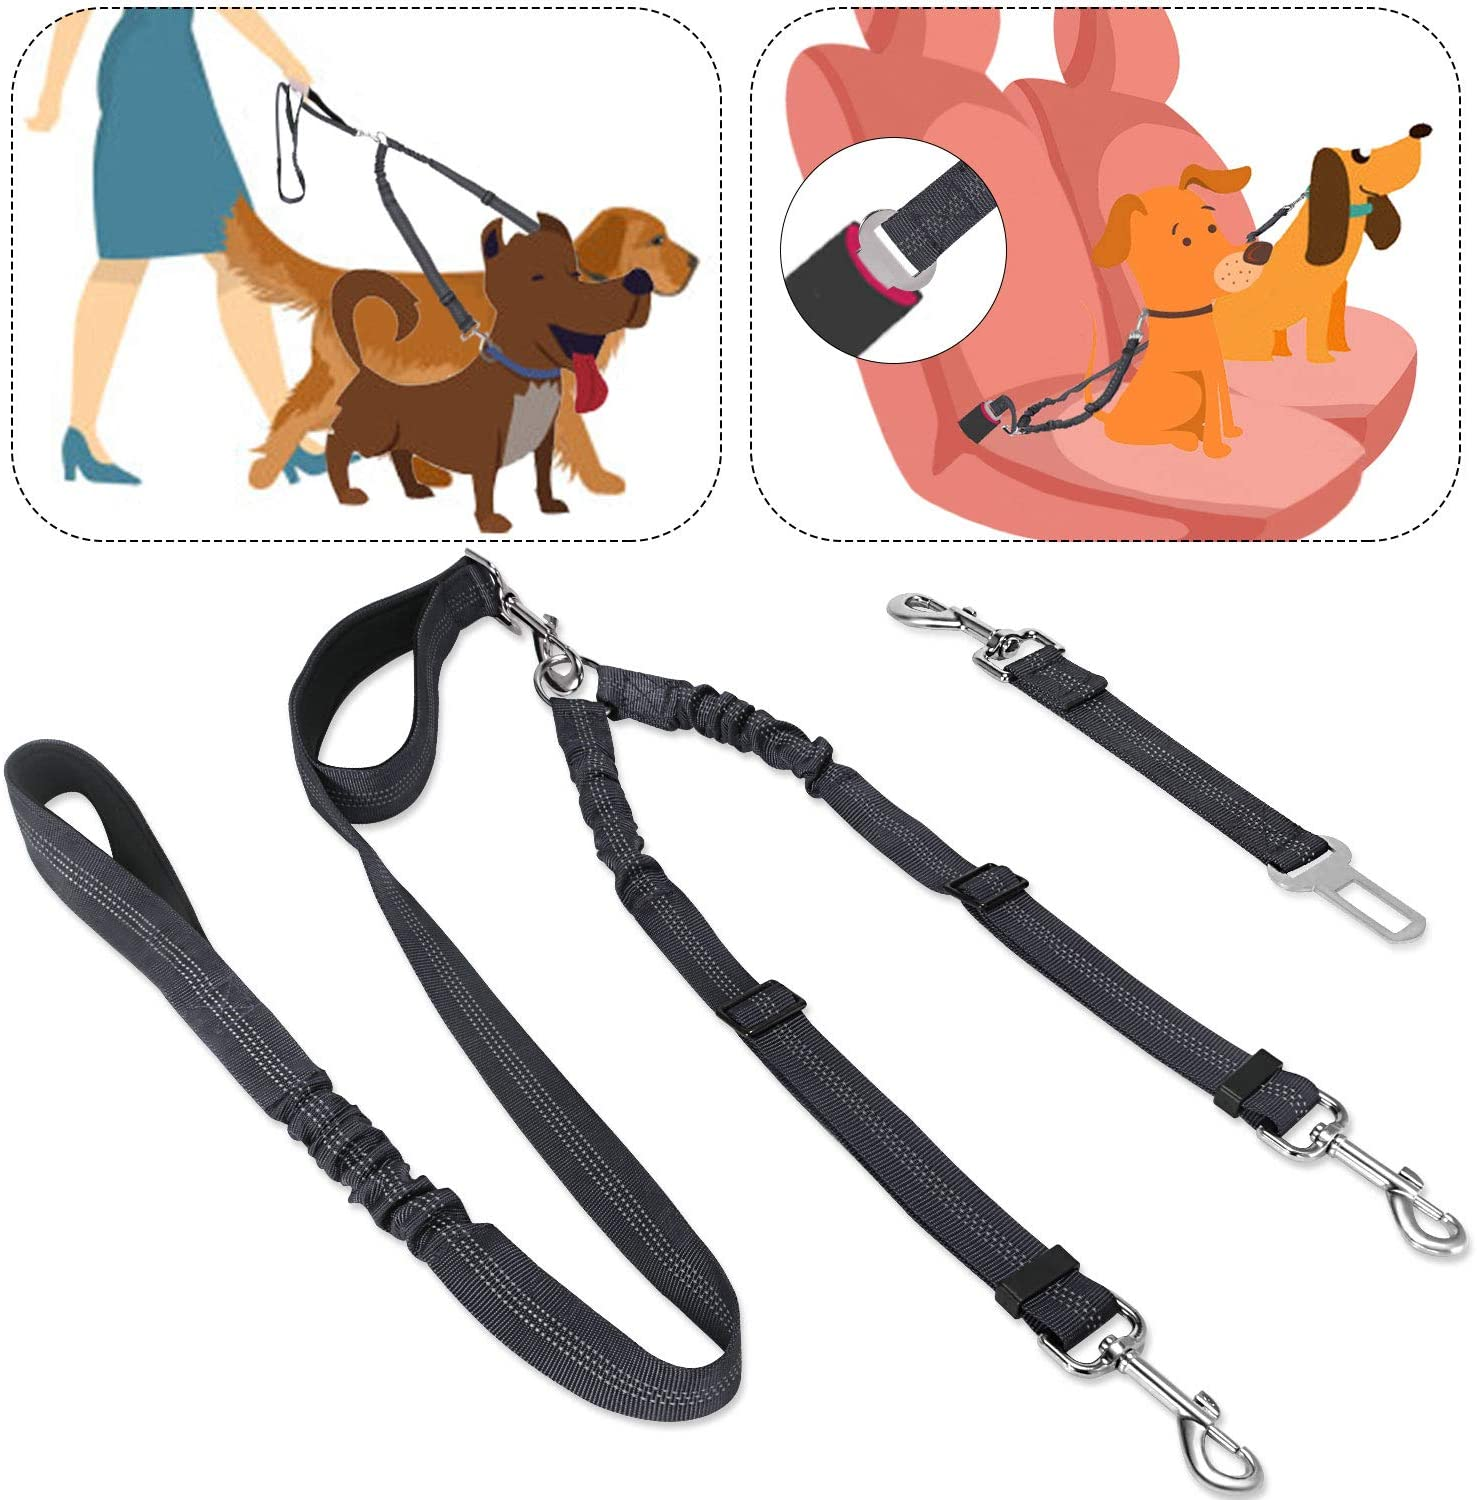 Double Leash for Dogs and Cats Nylon Double Dog Leash for Two Small Dogs Couple Dog Leash for Small Dogs 2 Dog Leash for 2 Dogs